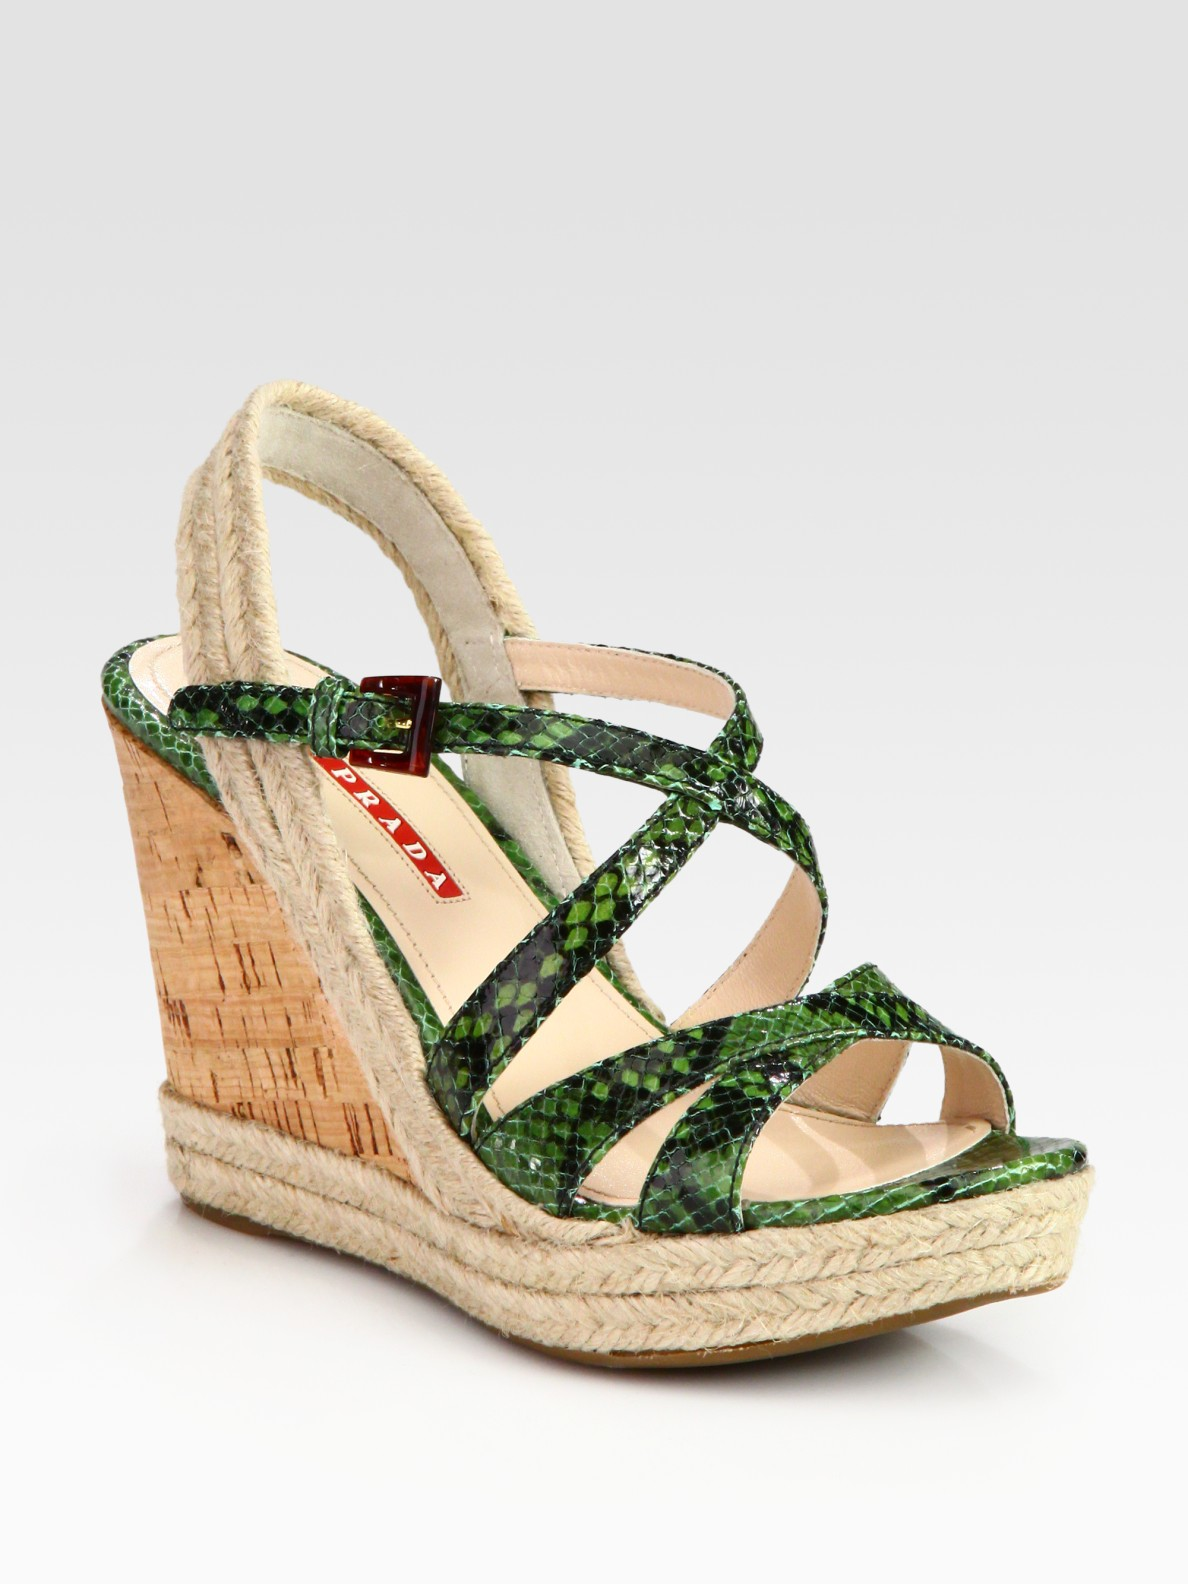 Prada Stamped Python Espadrille Slingback Wedge Sandals In